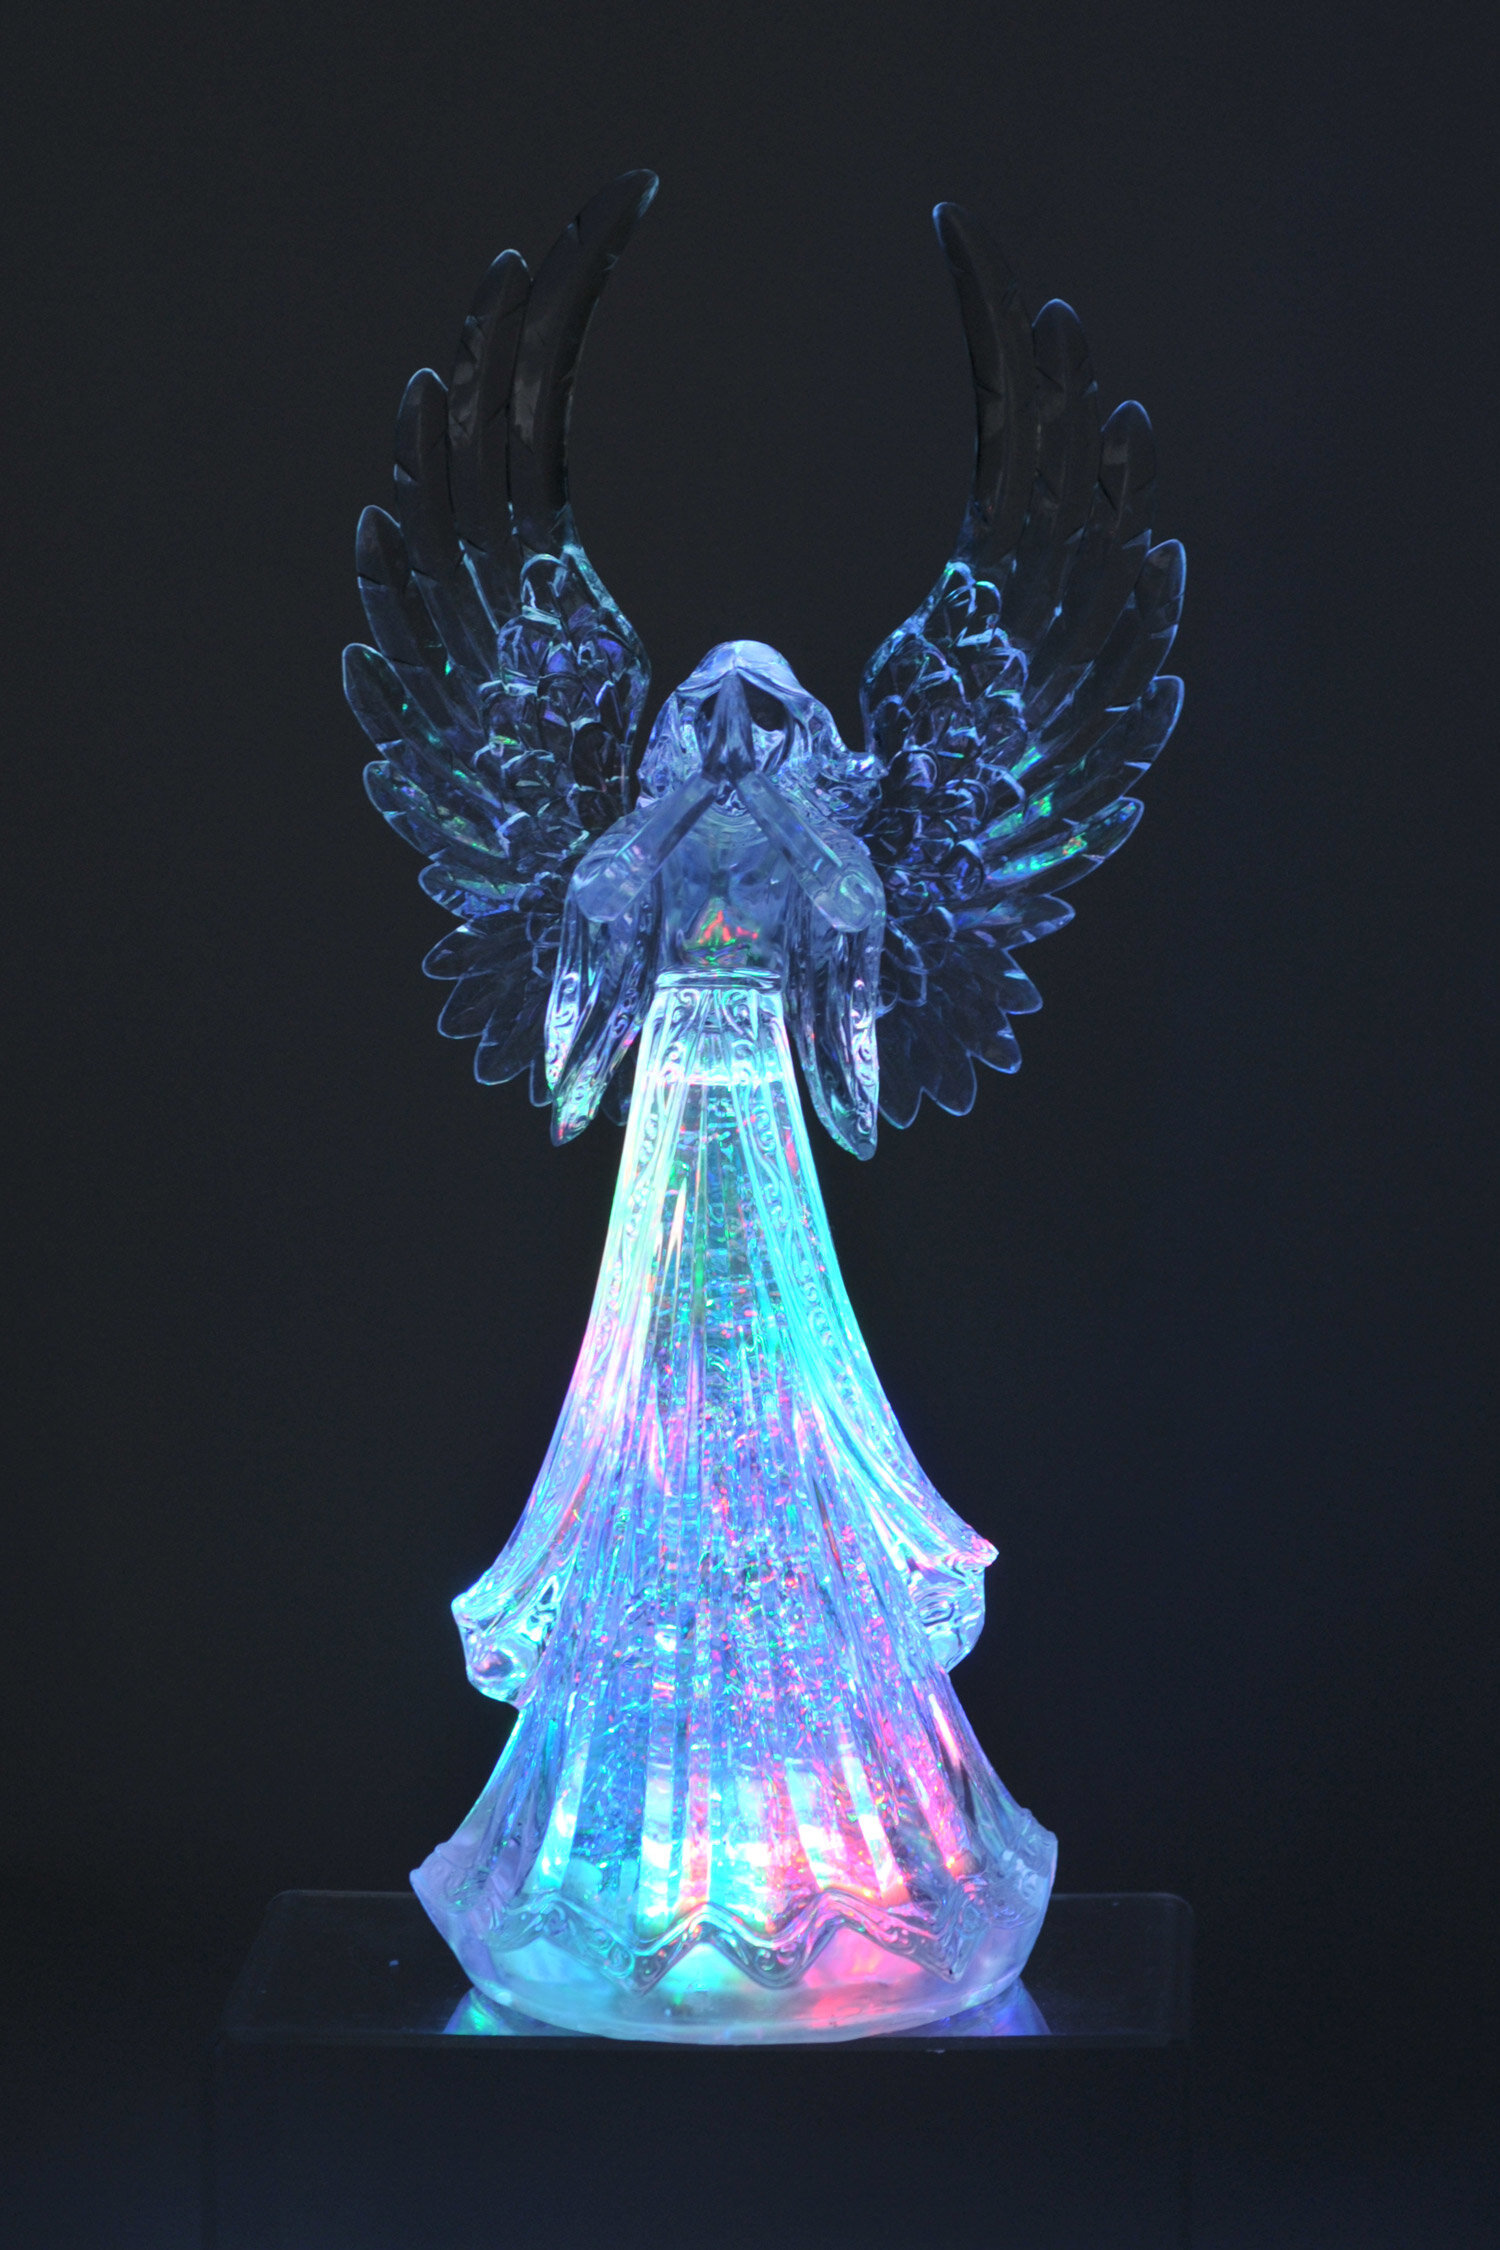 Schilder Tafeln Mobel Wohnen Sparkle Crystal Art Pictures Home Decor Friends Are Angels No Picture Mc Mgmt Com